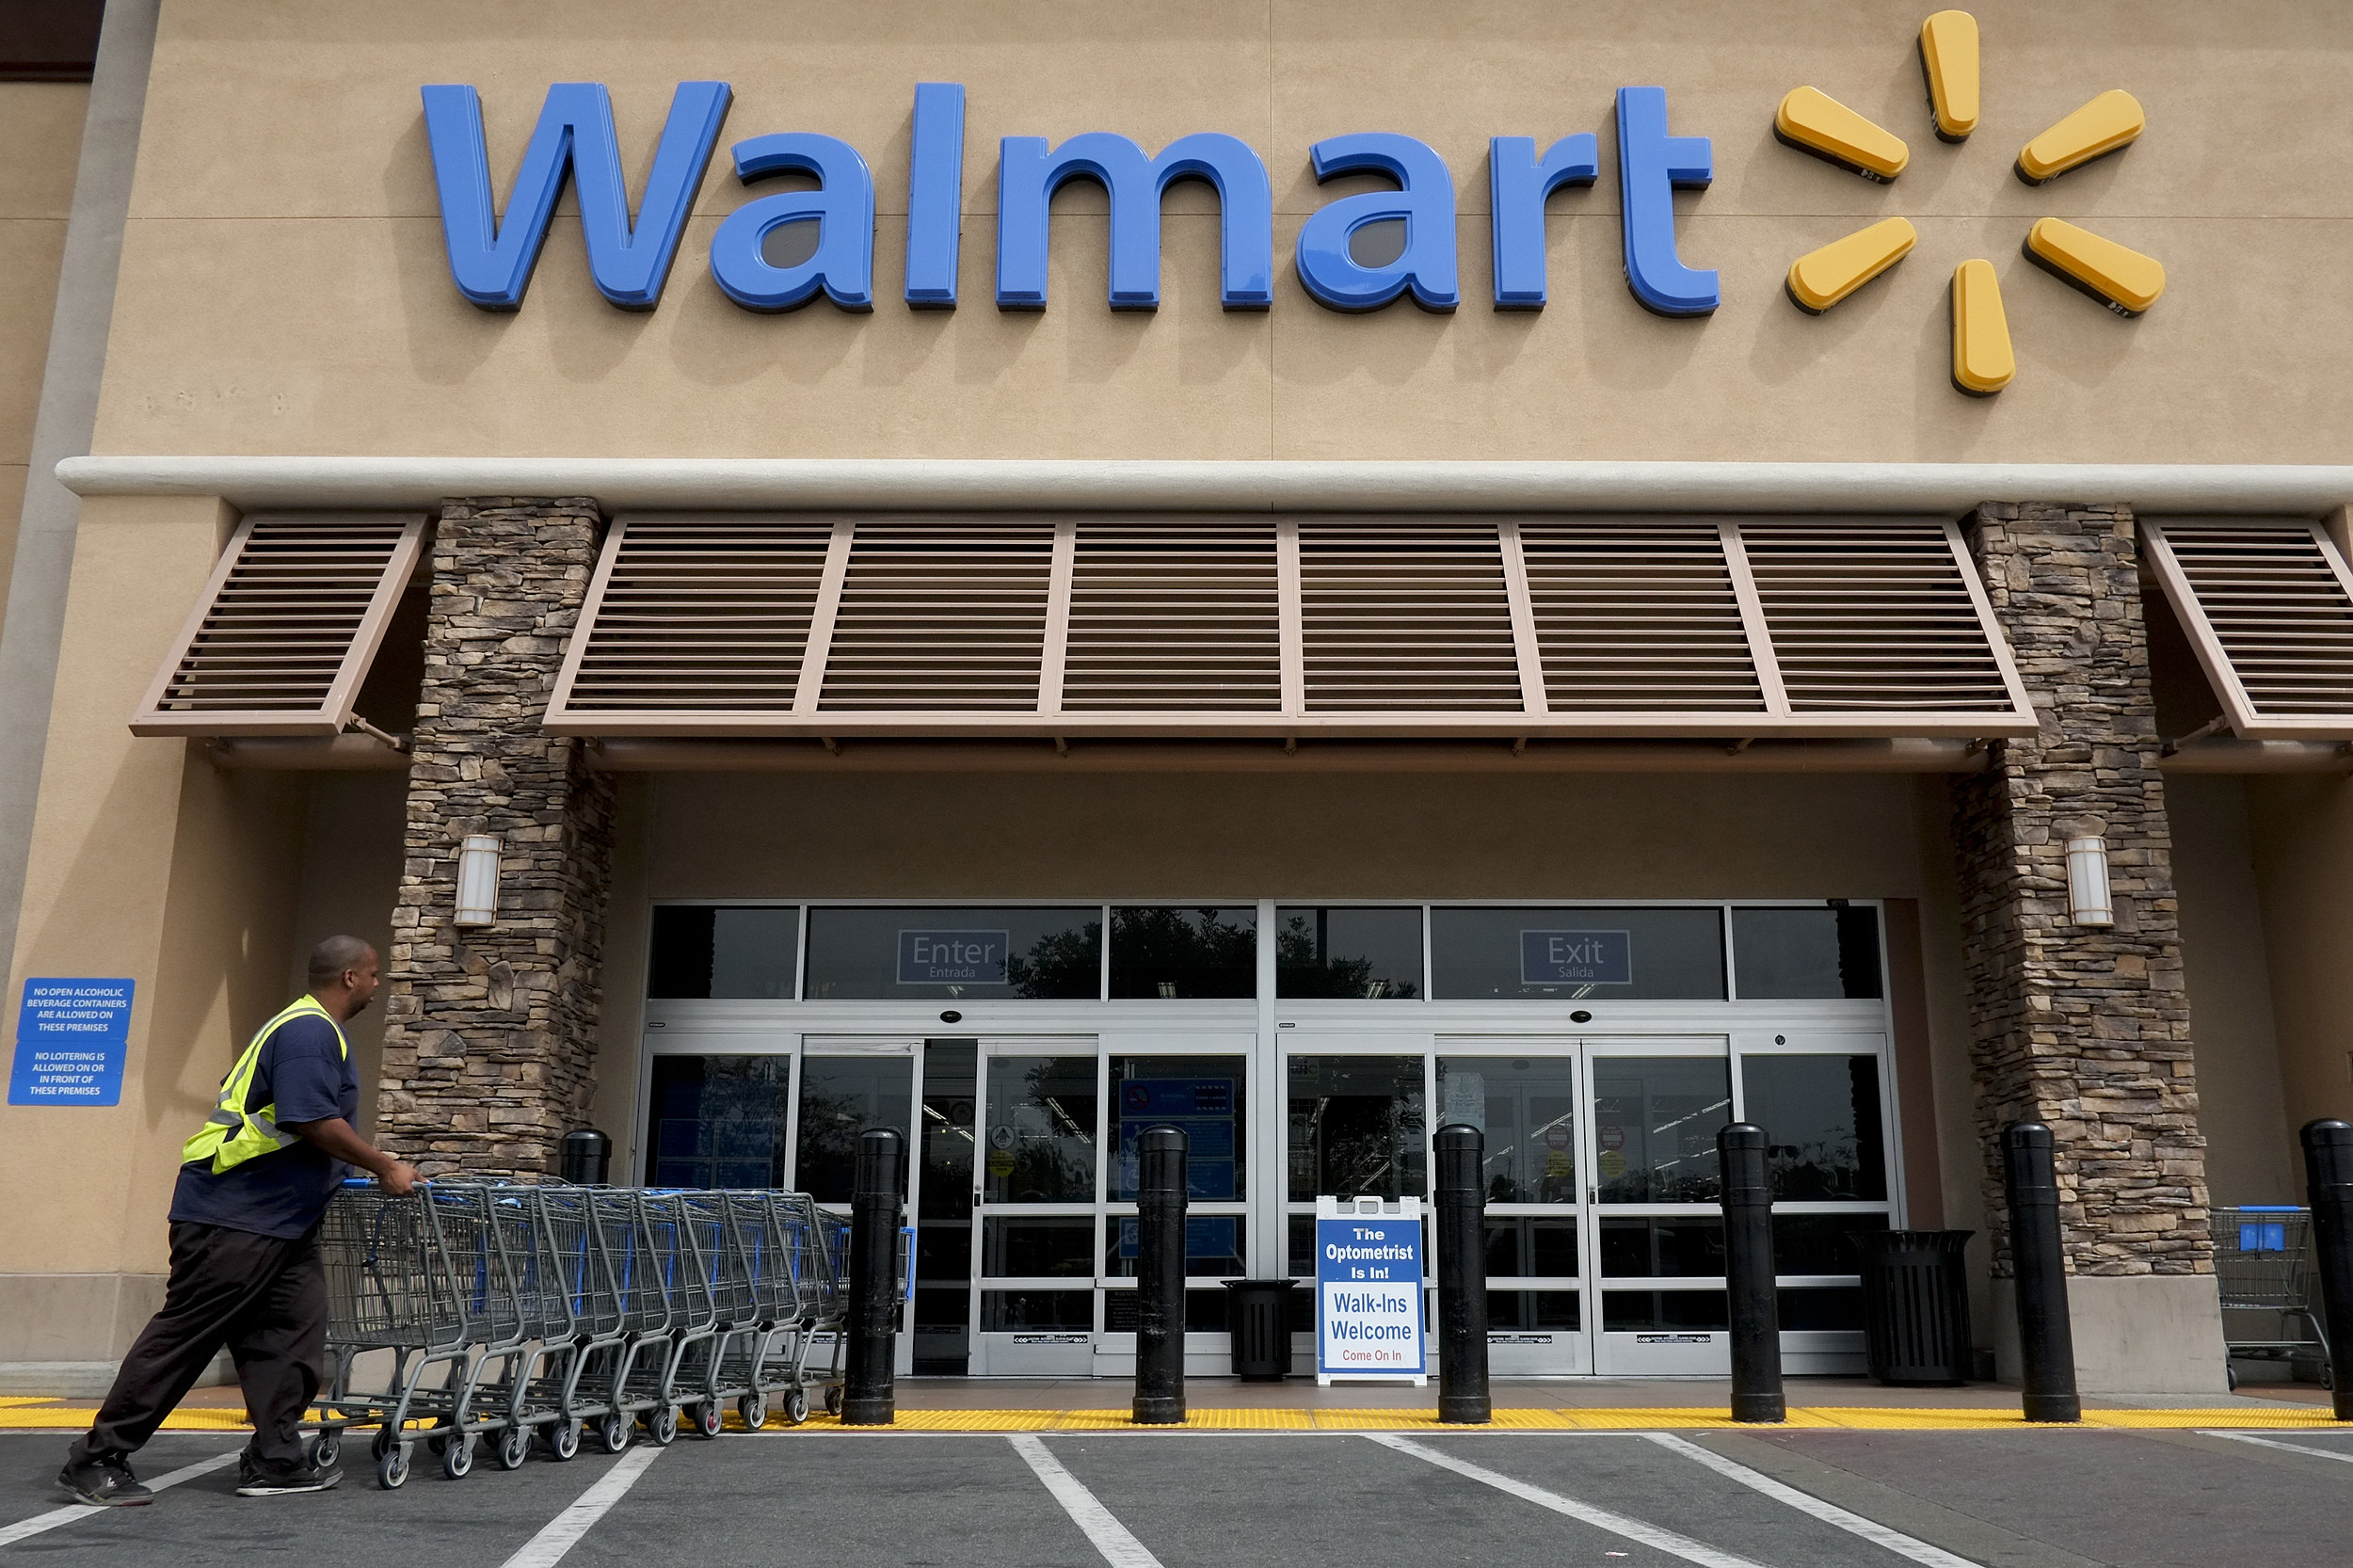 1.02 is Wal Mart Stores Inc's (NYSE:WMT) Institutional Investor Sentiment